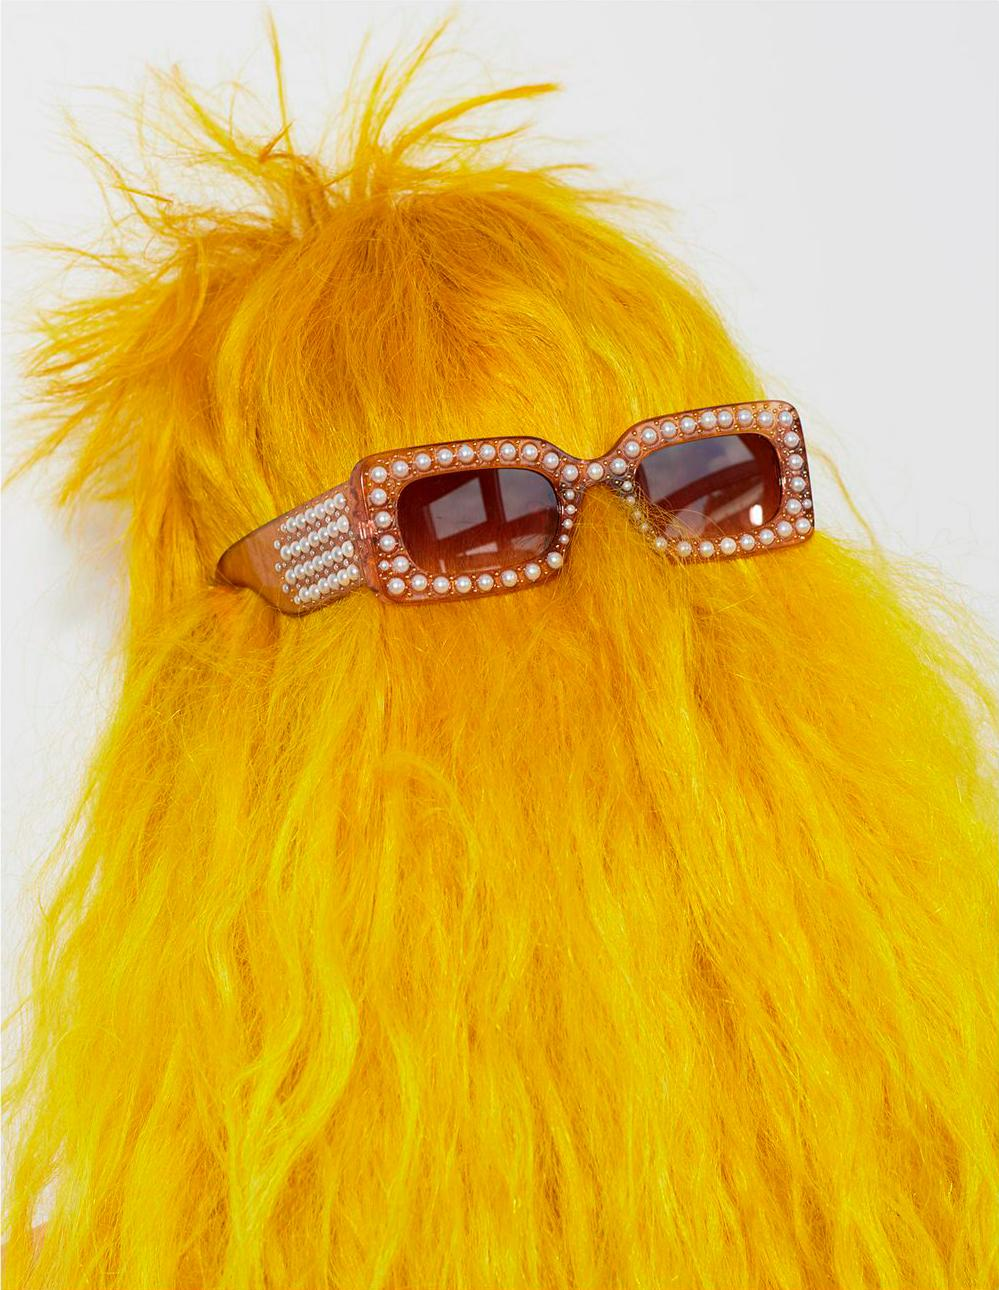 bright lemon yellow hair with brown pearl sunglasses by Bleach London